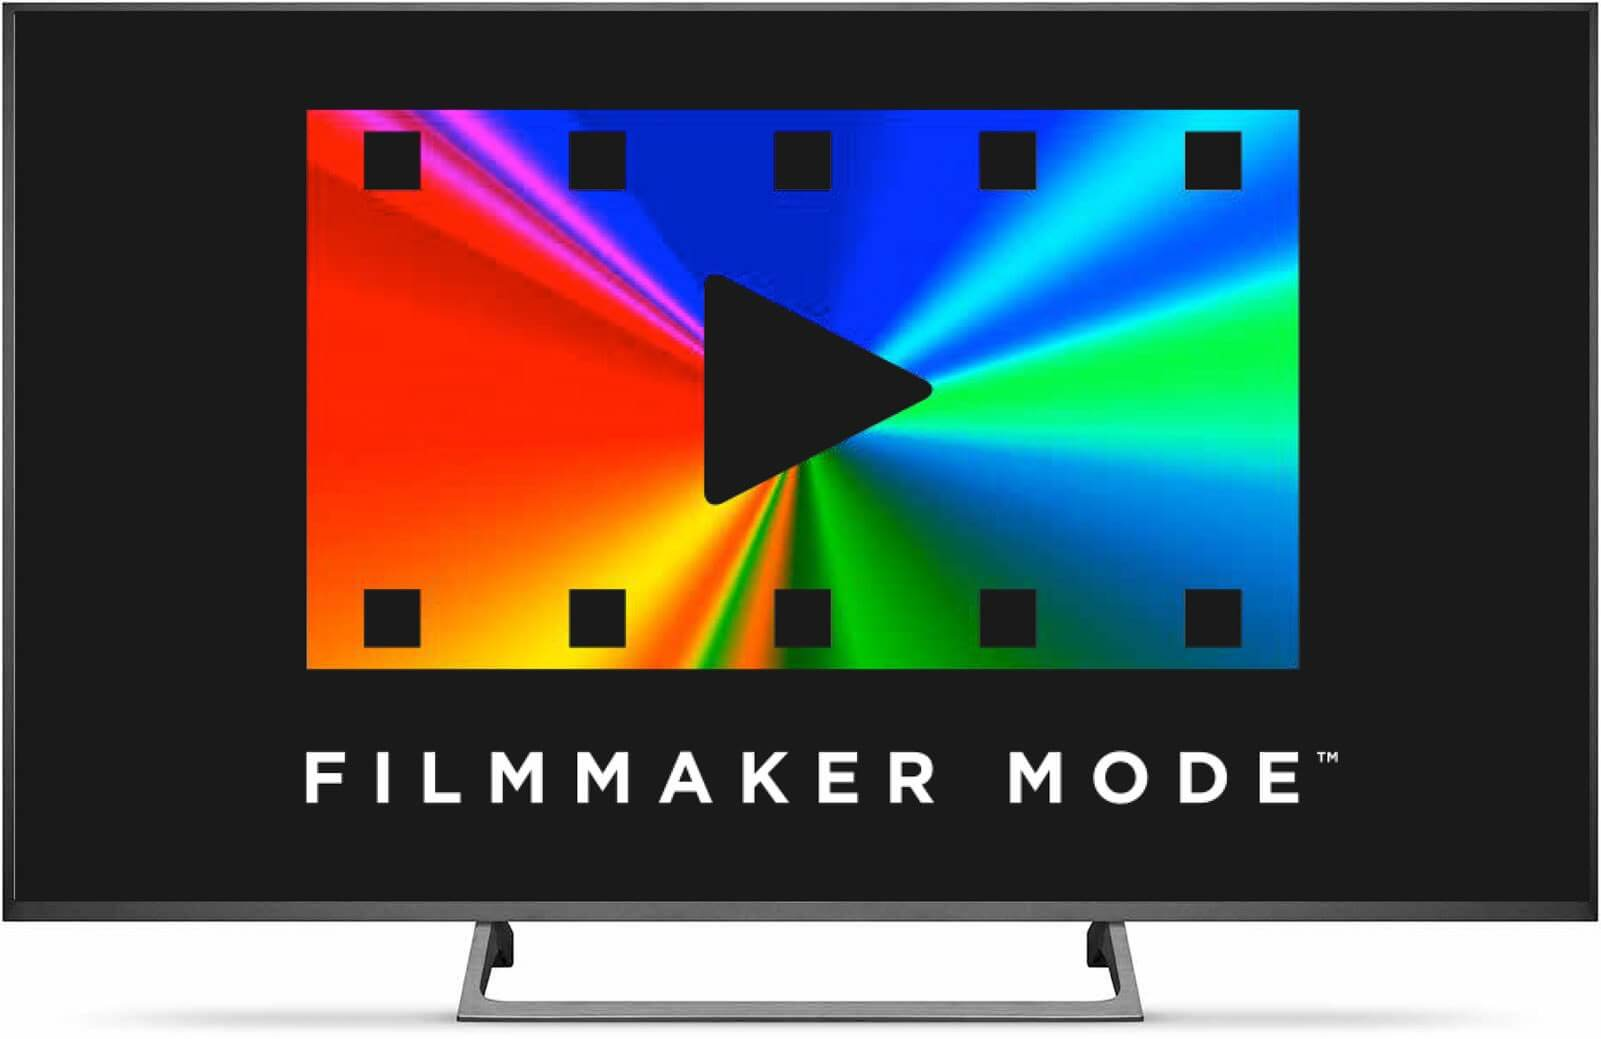 New Filmmaker Mode Coming to TV Sets Next Year